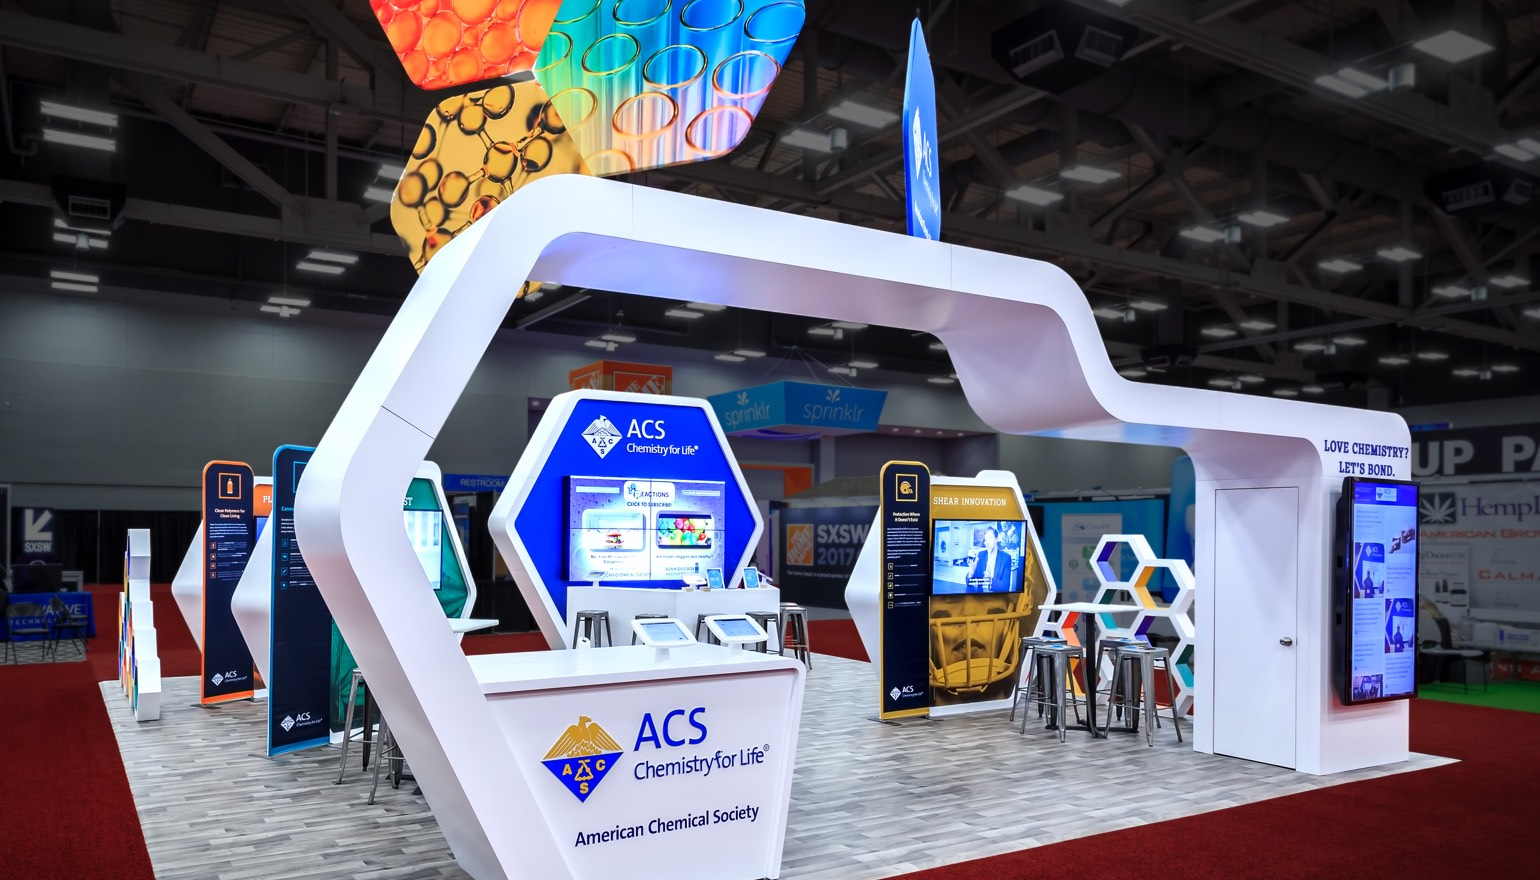 REQ ACS SXSW Booth Design